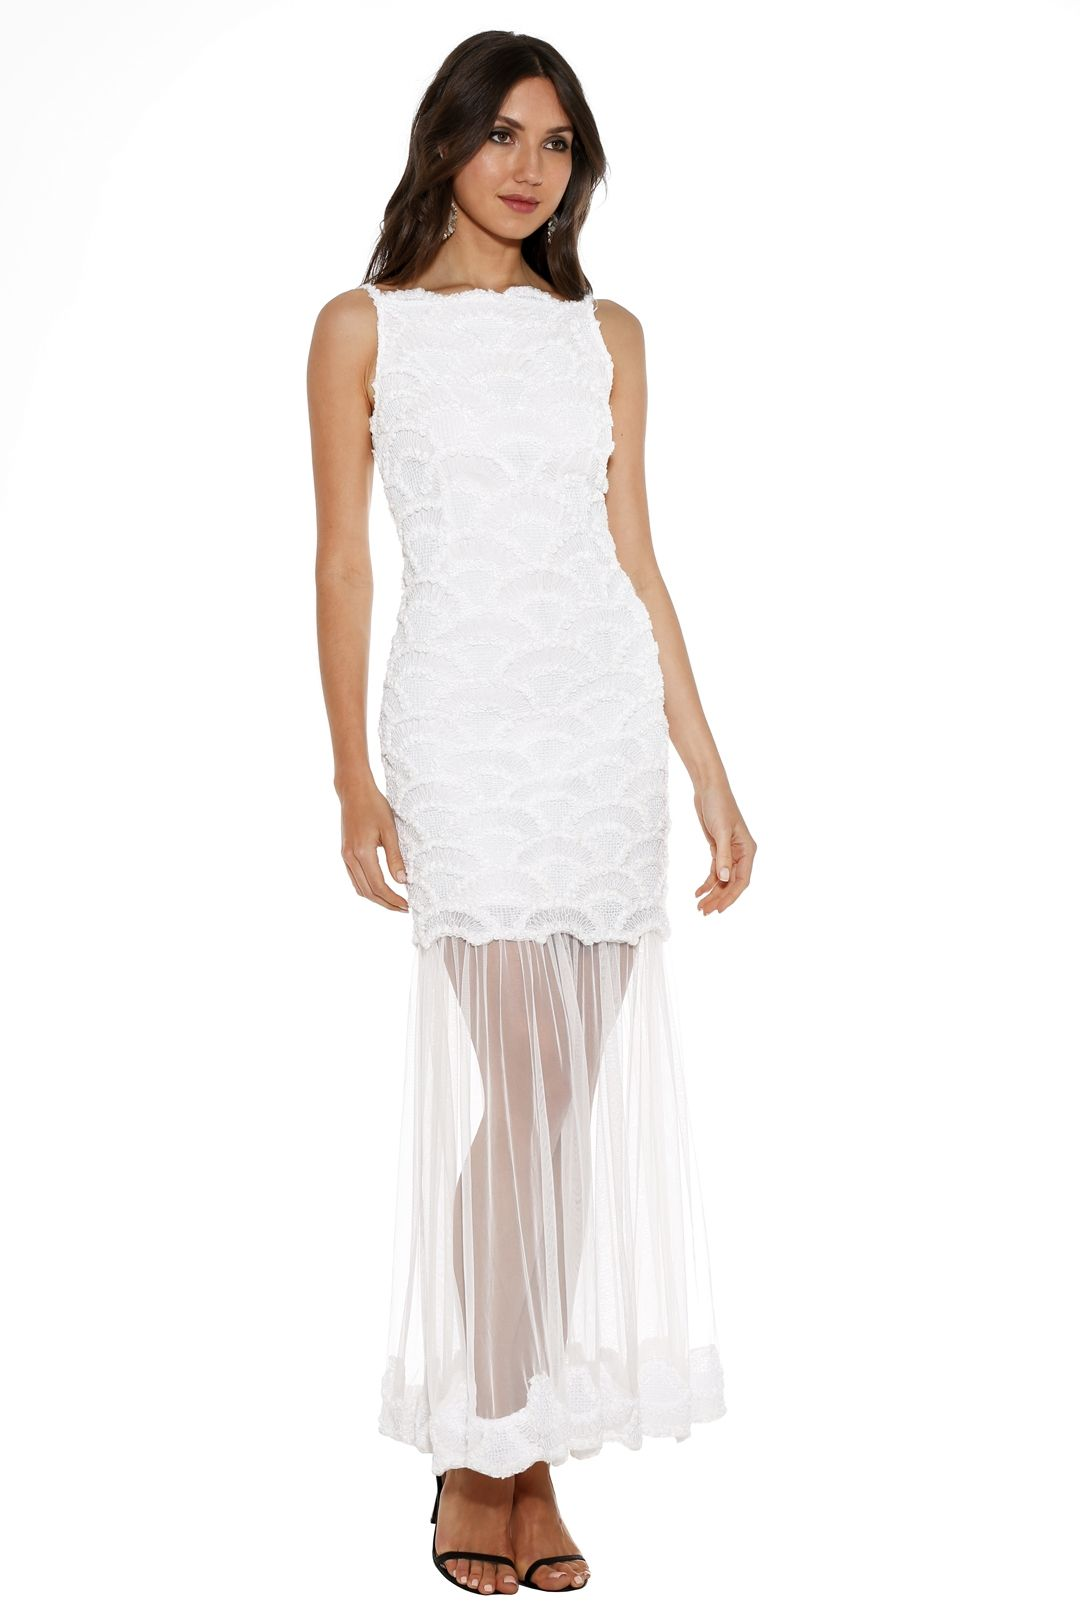 Asilio - An English Summer Dress - White - Side